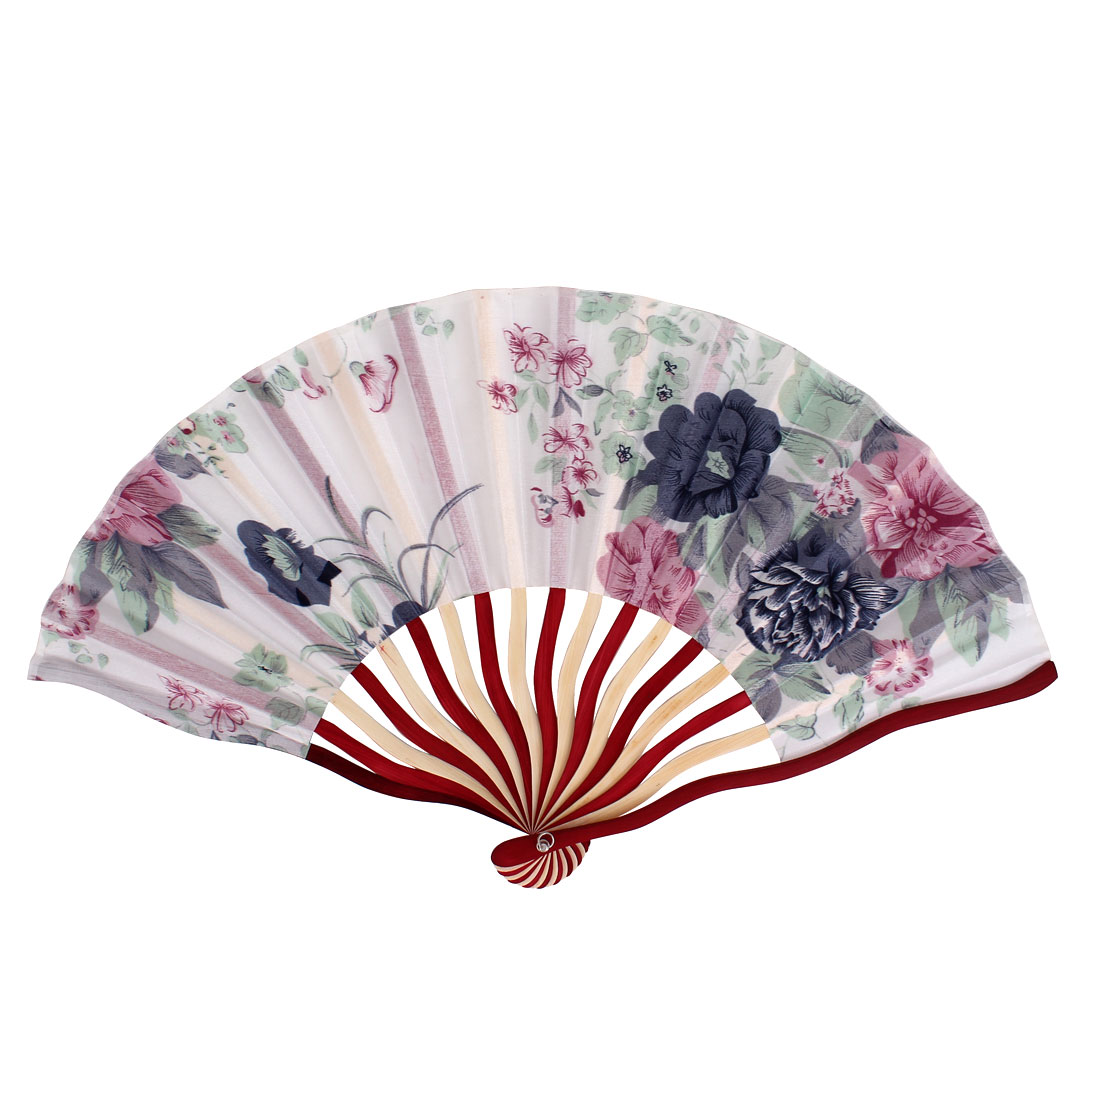 Chinese Peony Print Fabric Cloth Ivory Red Wood Frame Handheld Foldable Hand Fan